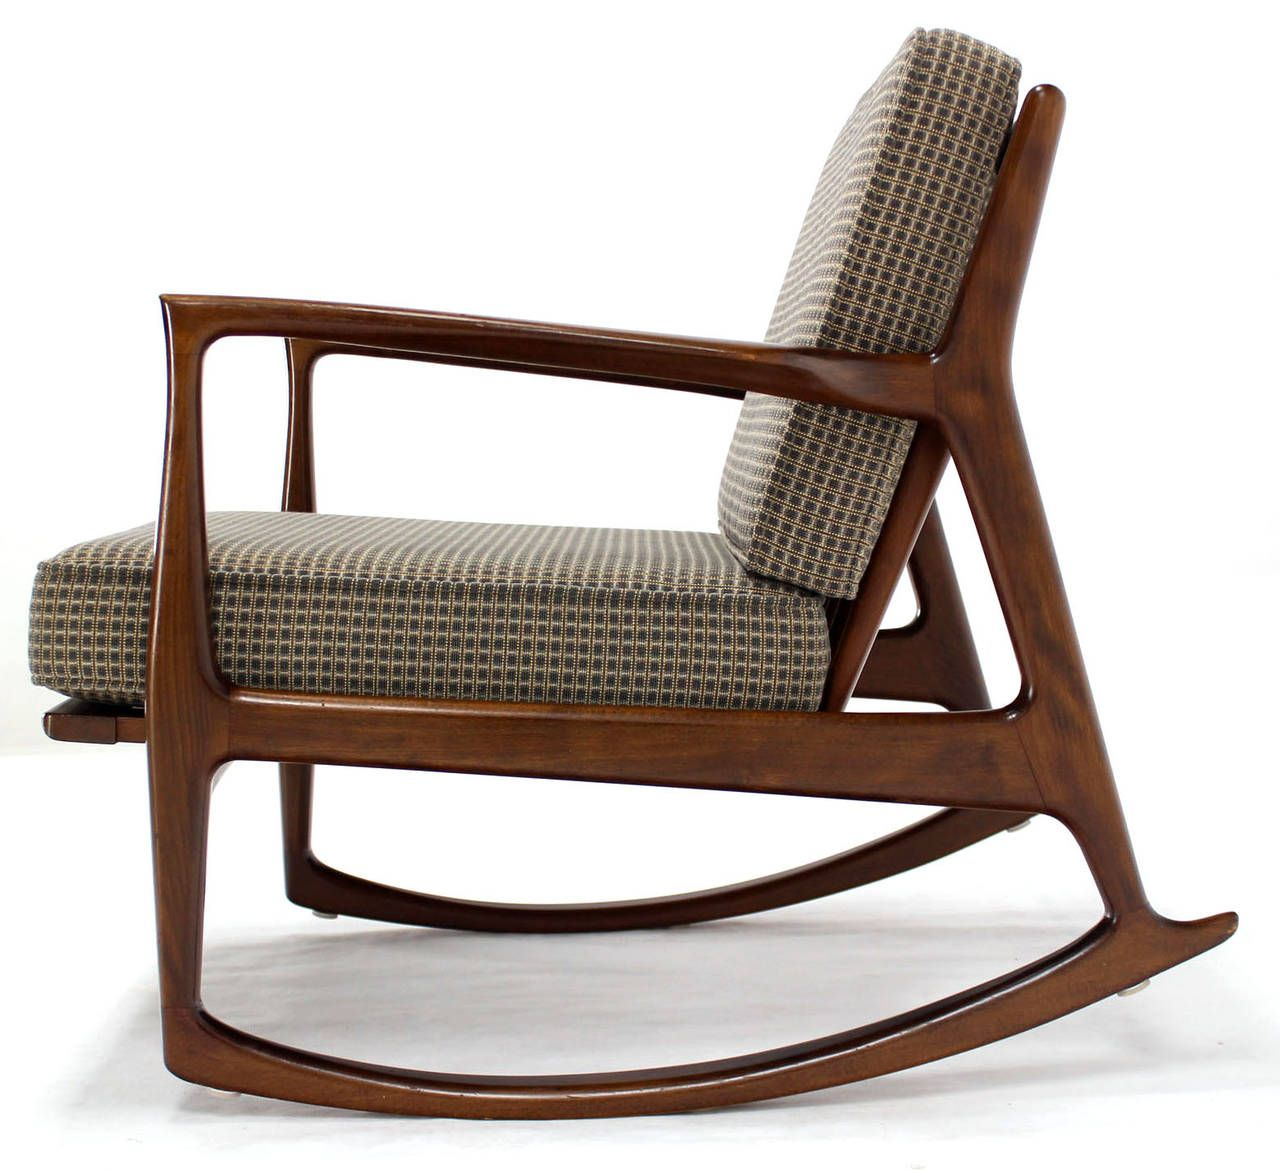 Outstanding Mid Century Rocking Chair Rocking Chair Rocking Chair Creativecarmelina Interior Chair Design Creativecarmelinacom